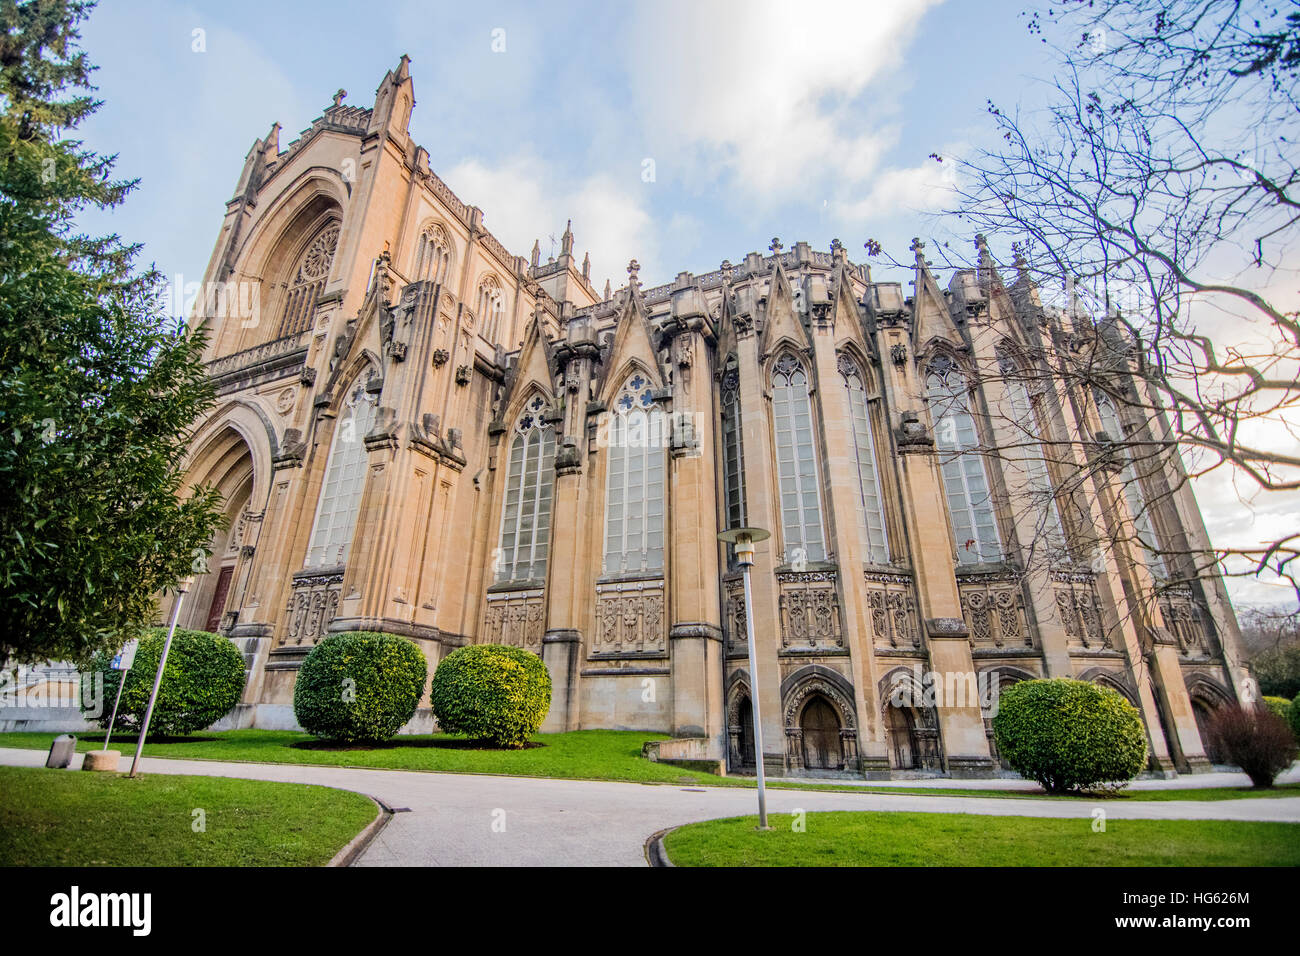 Cathedral of Mary Immaculate in Vitoria, Spain, built in 20th Century with High Gothic style. - Stock Image